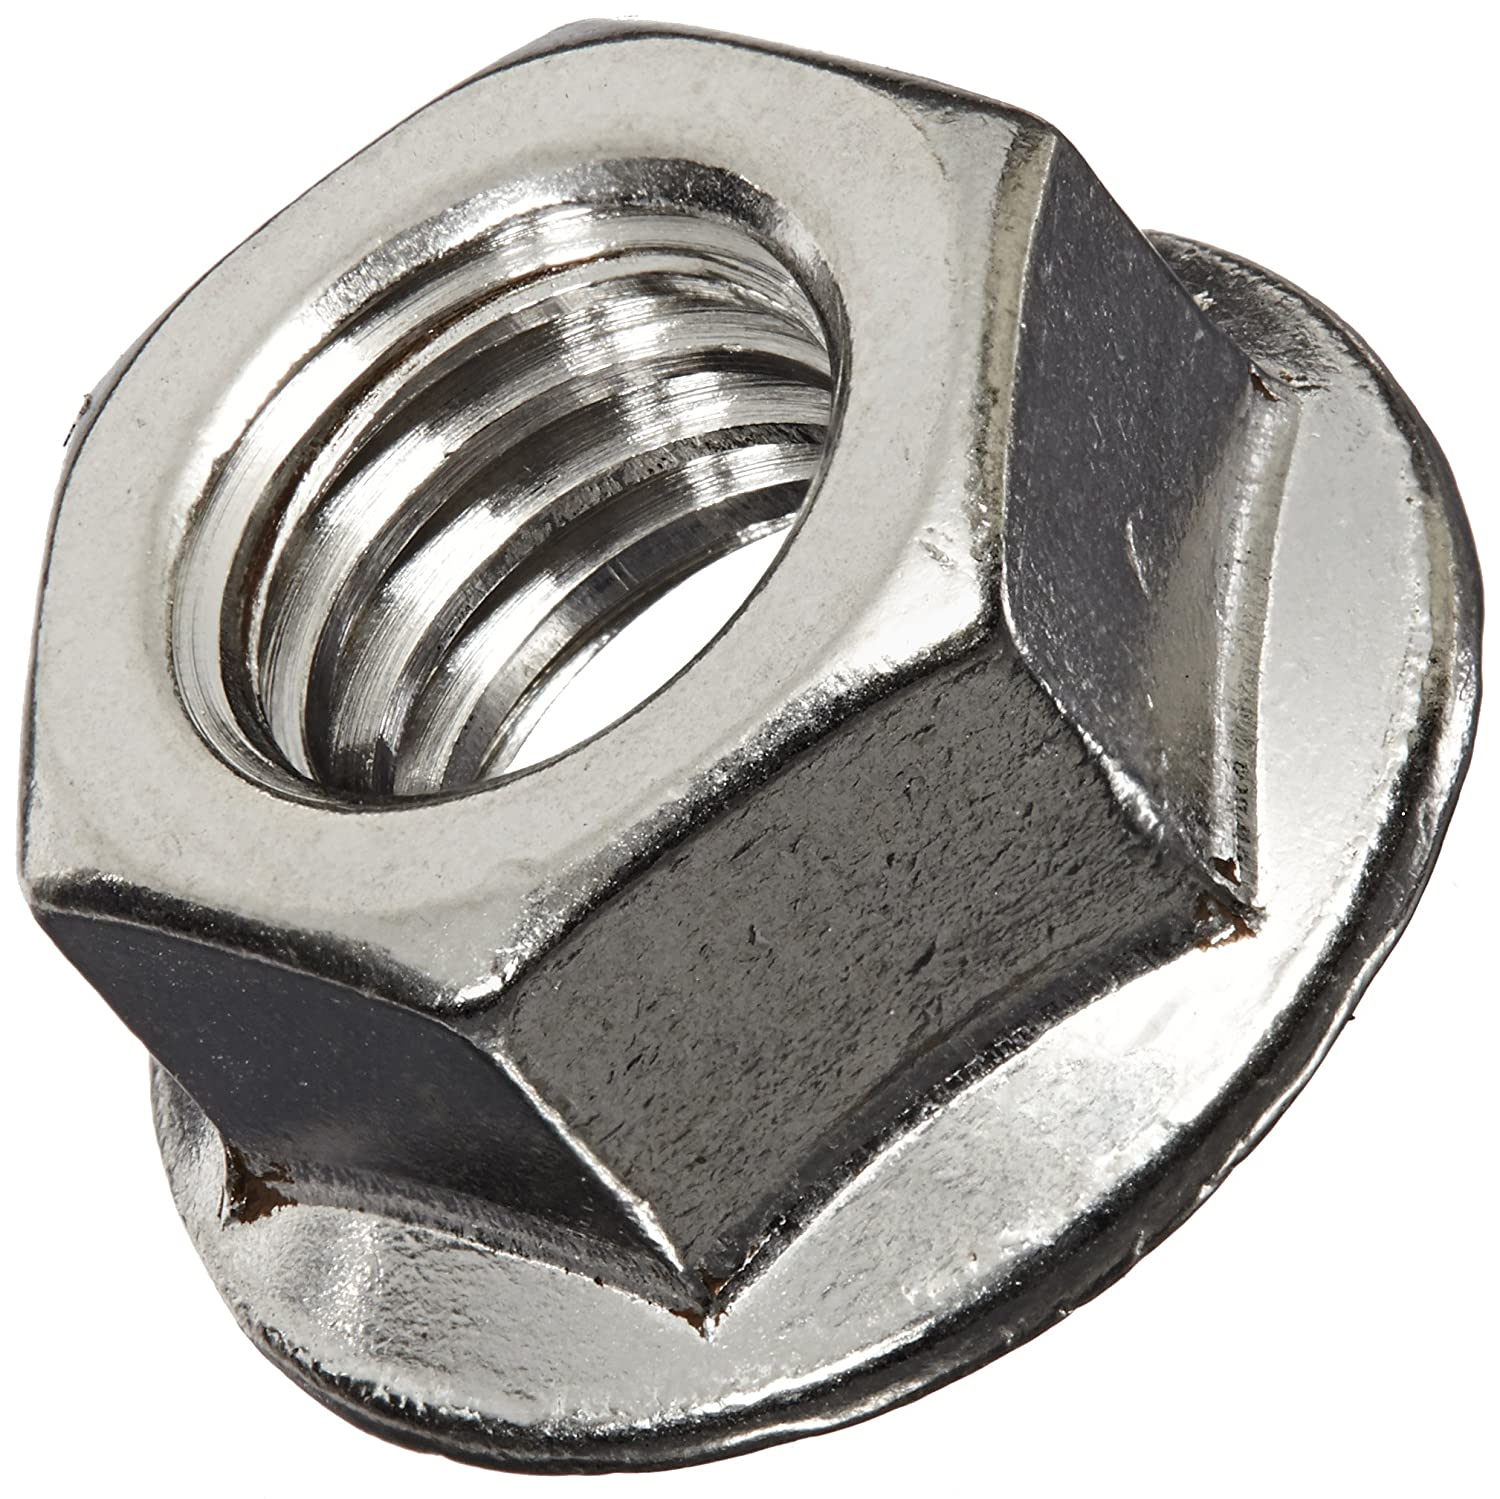 Self-Locking Serrated Flange 29//64 Overall Height Pack of 10 3//4 Width Across Flats Plain Finish 18-8 Stainless Steel Hex Flange Nut 1//2-13 Threads ASME B18.2.2